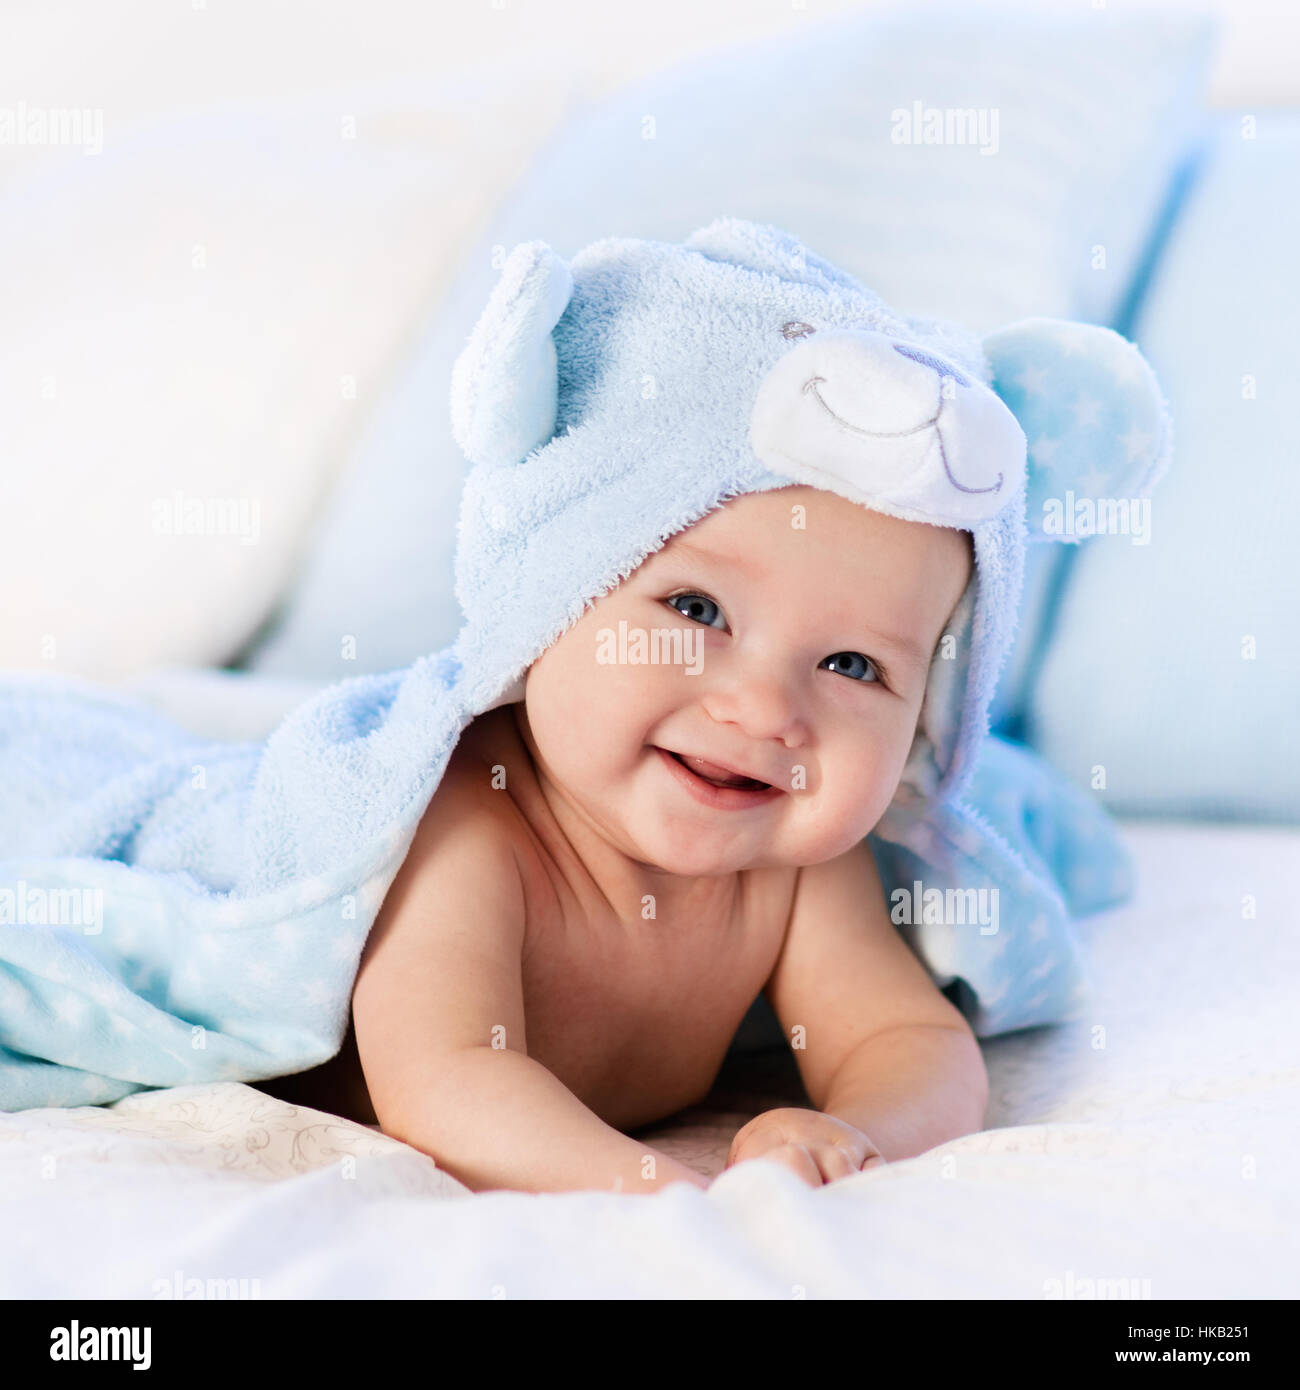 Baby Boy Wearing Diaper And Blue Towel In White Sunny Bedroom Newborn Child Relaxing Bed After Bath Or Shower